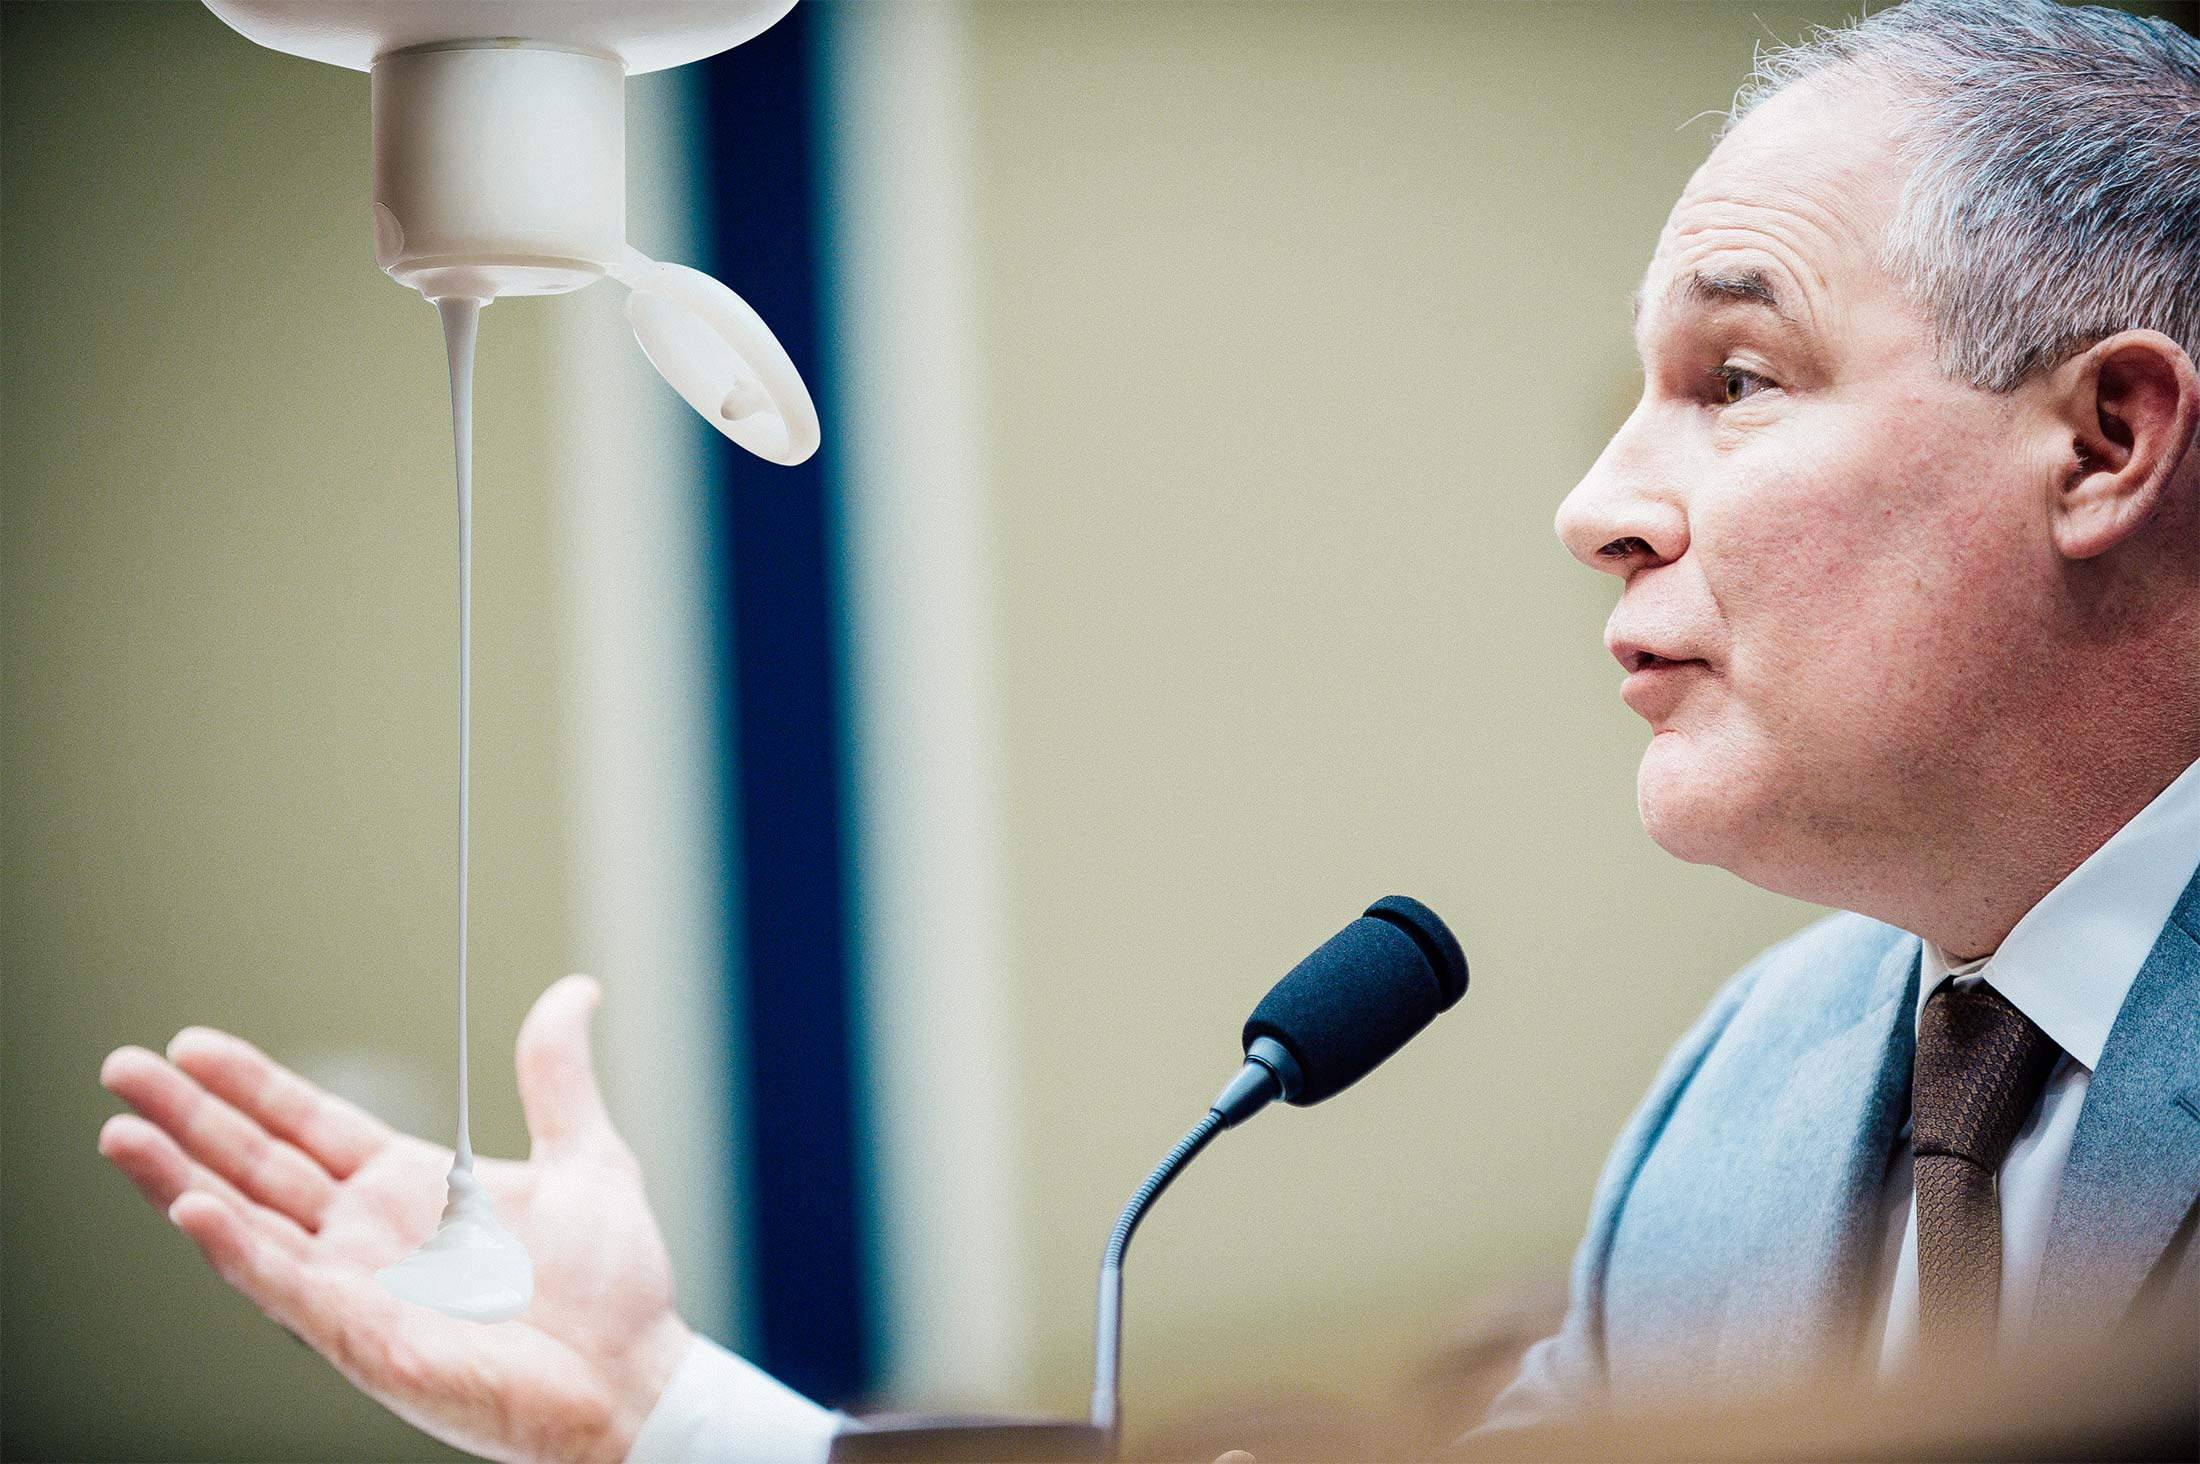 Pruitt gestures with his right hand as it is filled by a giant photoshopped bottle of lotion.